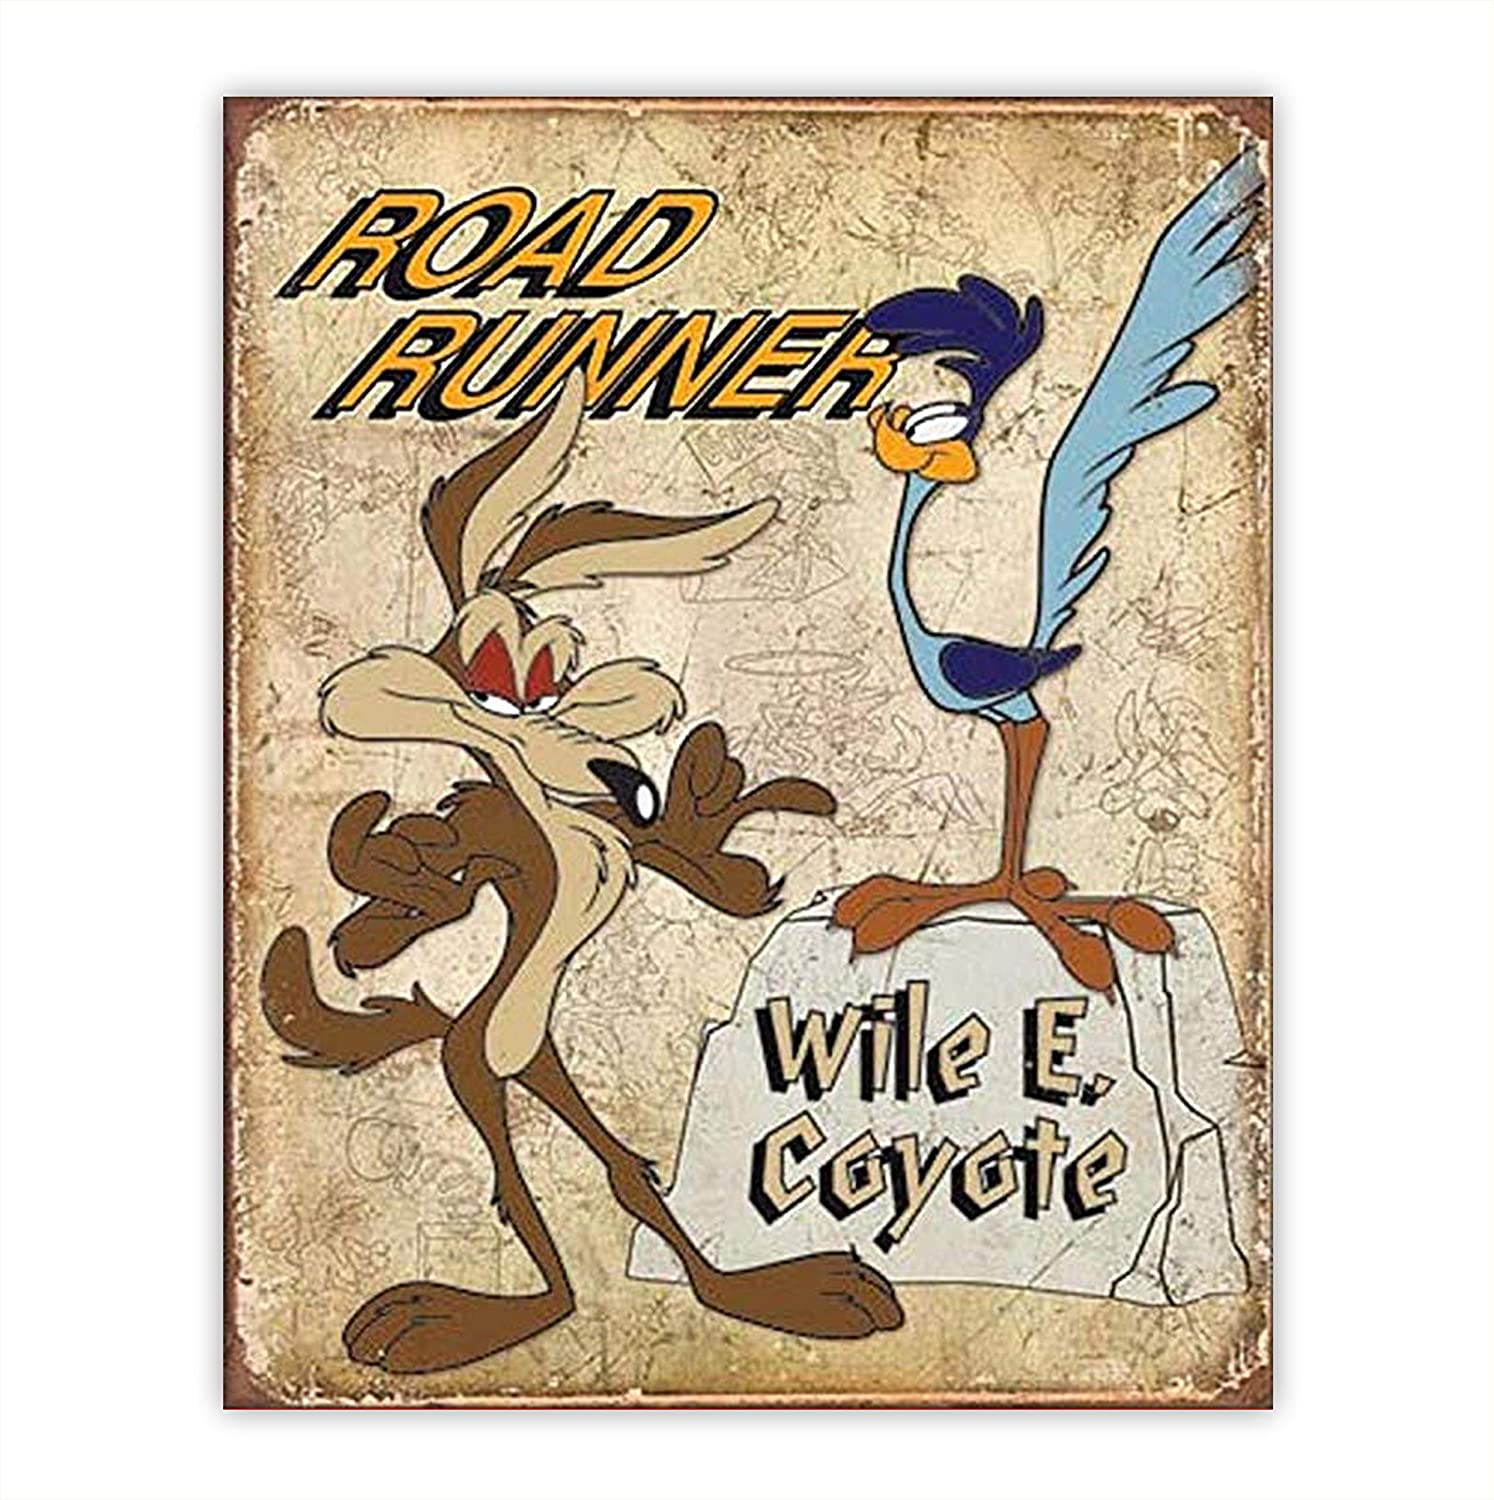 """""""Road Runner & Wile E. Coyote"""" Vintage Sign Poster Print-8 x 10""""-Wall Art Prints-Ready To Frame. Distressed Replica Print. Great Retro Cartoon Decor for Home-Dorm-Bedroom-Caves. Love the""""Meep-Meep""""."""